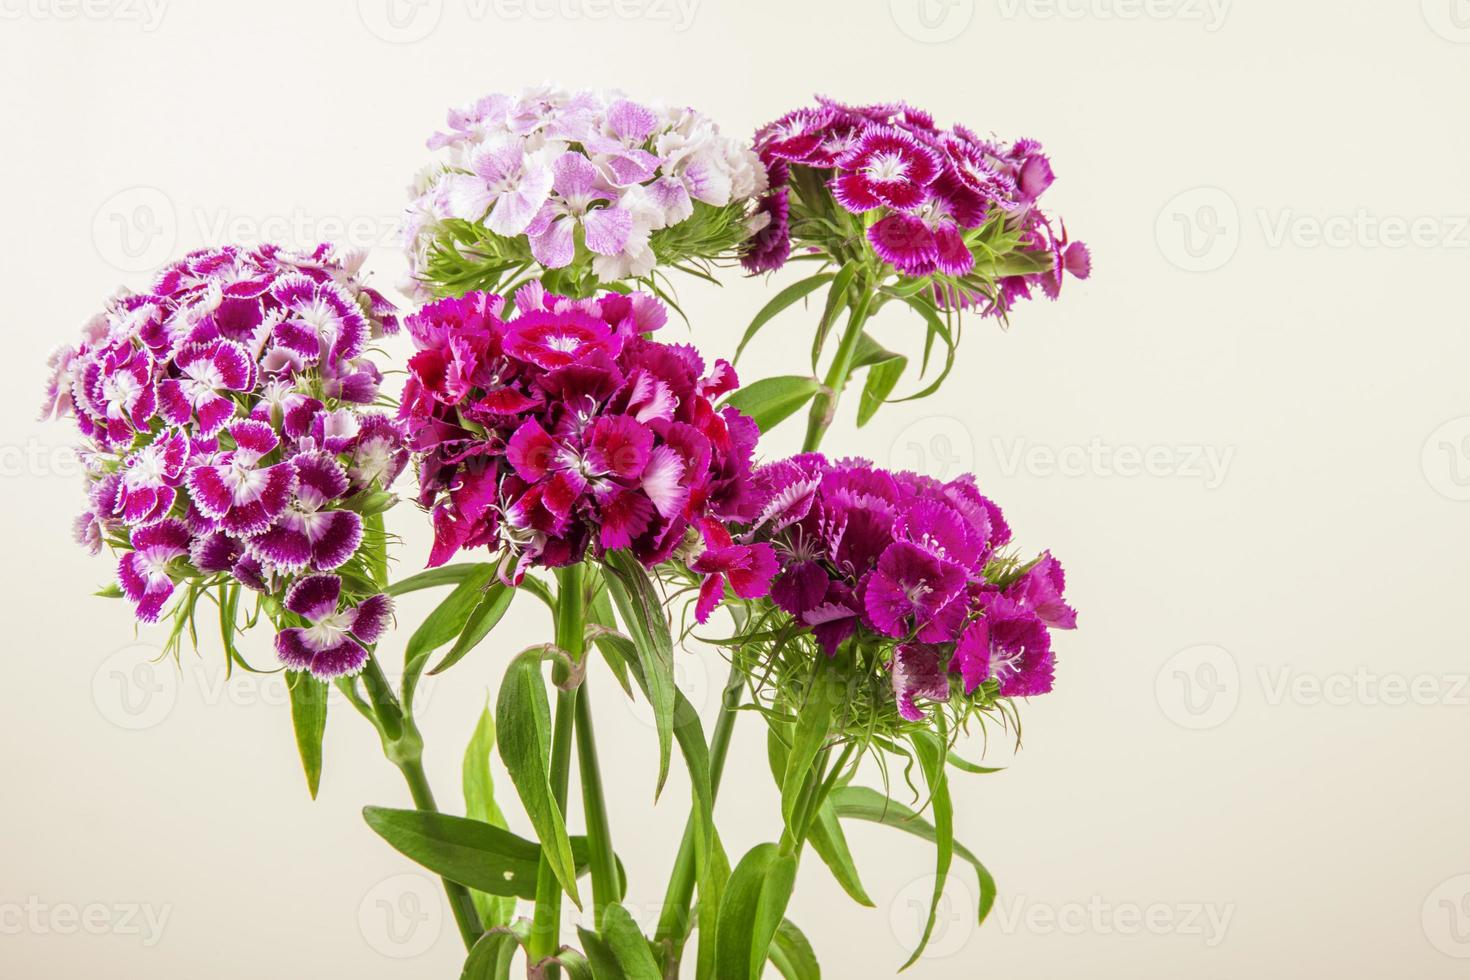 Bunch of purple carnations on a white background photo